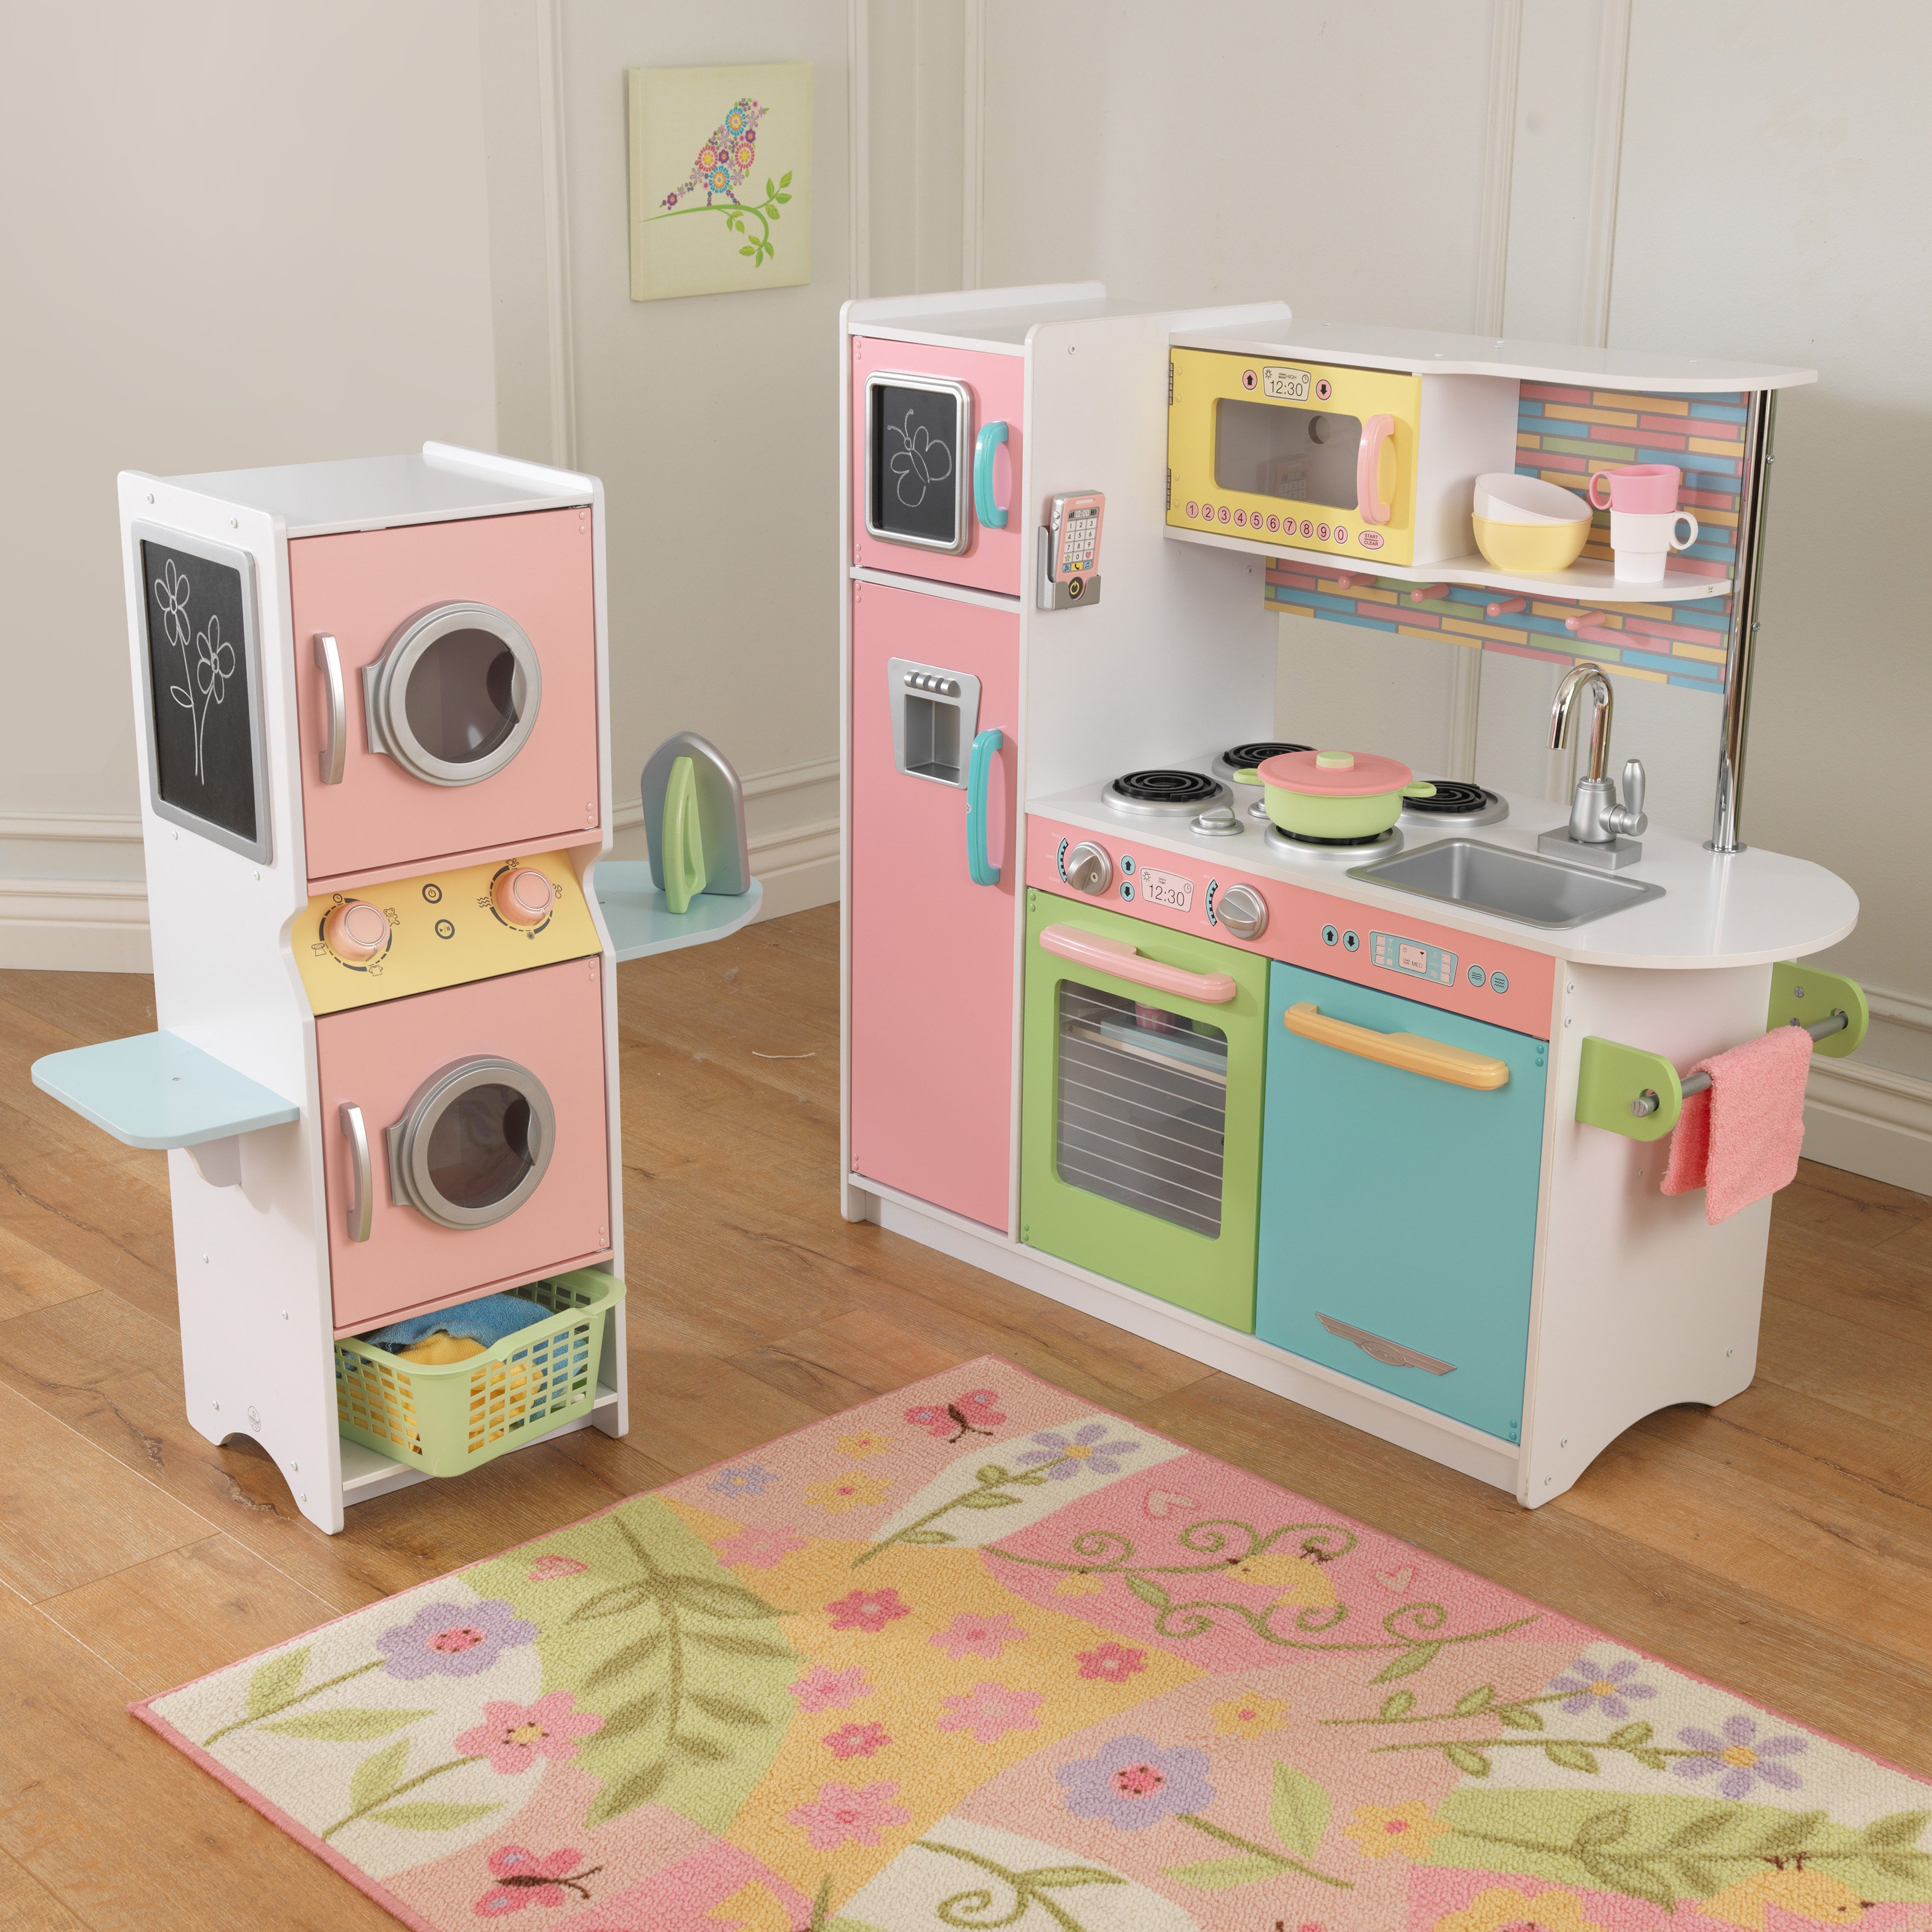 KidKraft Uptown Pastel Play Kitchen and Laundry Playset